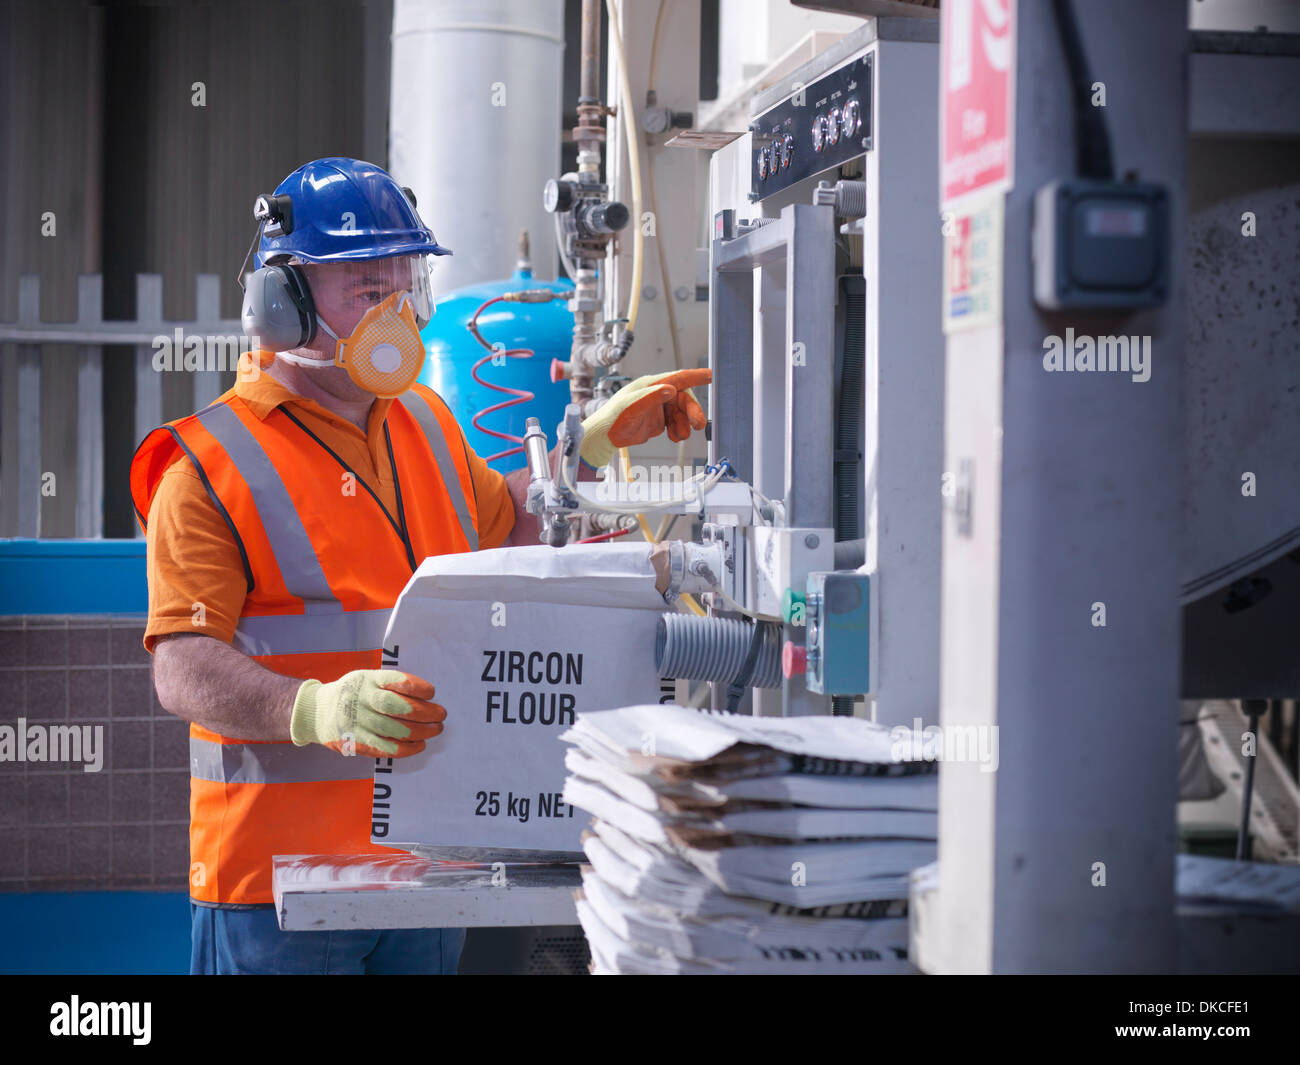 Worker in protective clothing filling zircon flour bags in mill - Stock Image